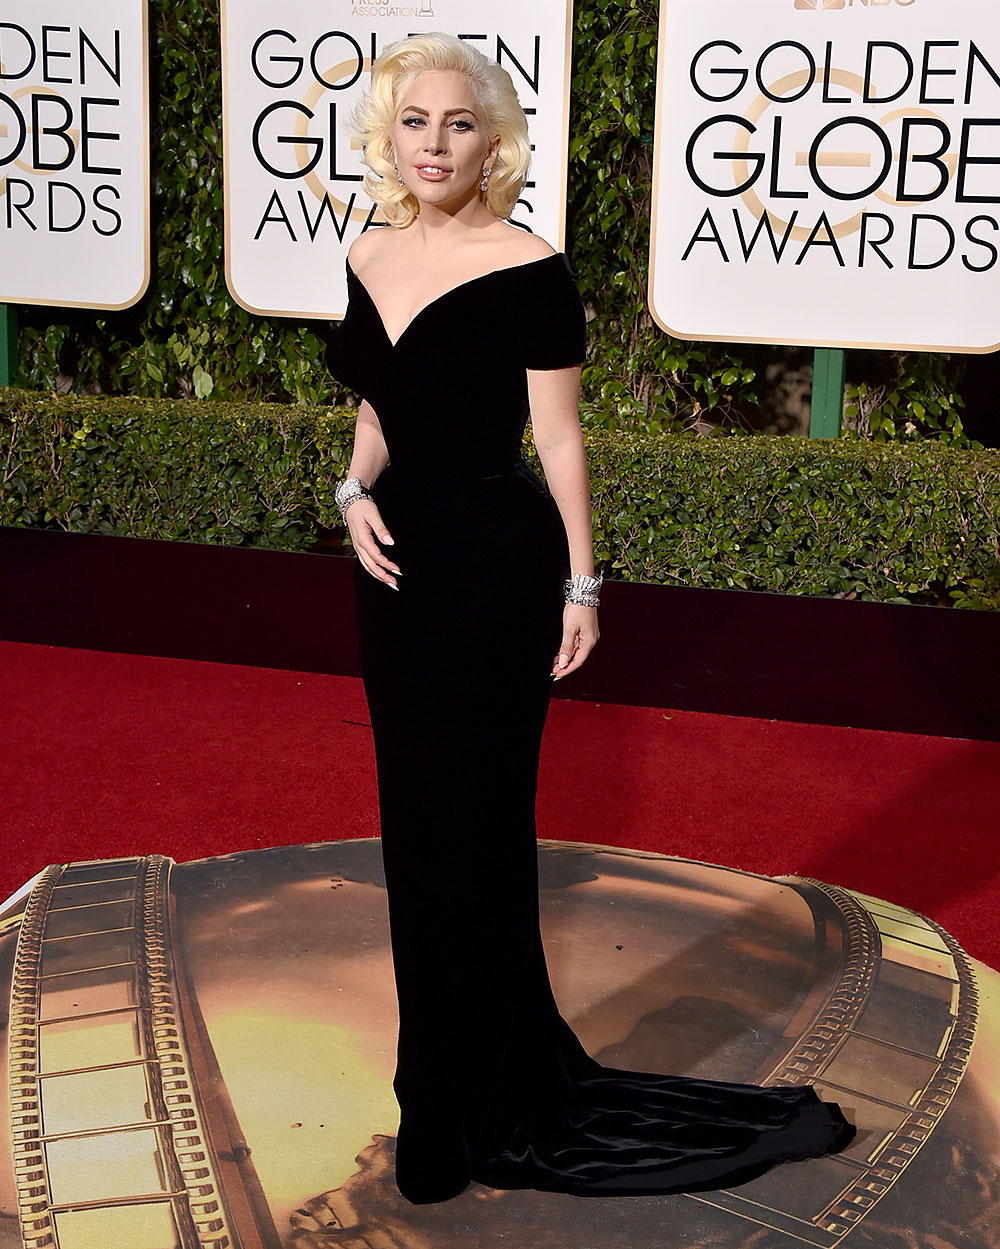 Golden-Globes-2016-Arrivals-Lady-Gaga-Billboard-1000